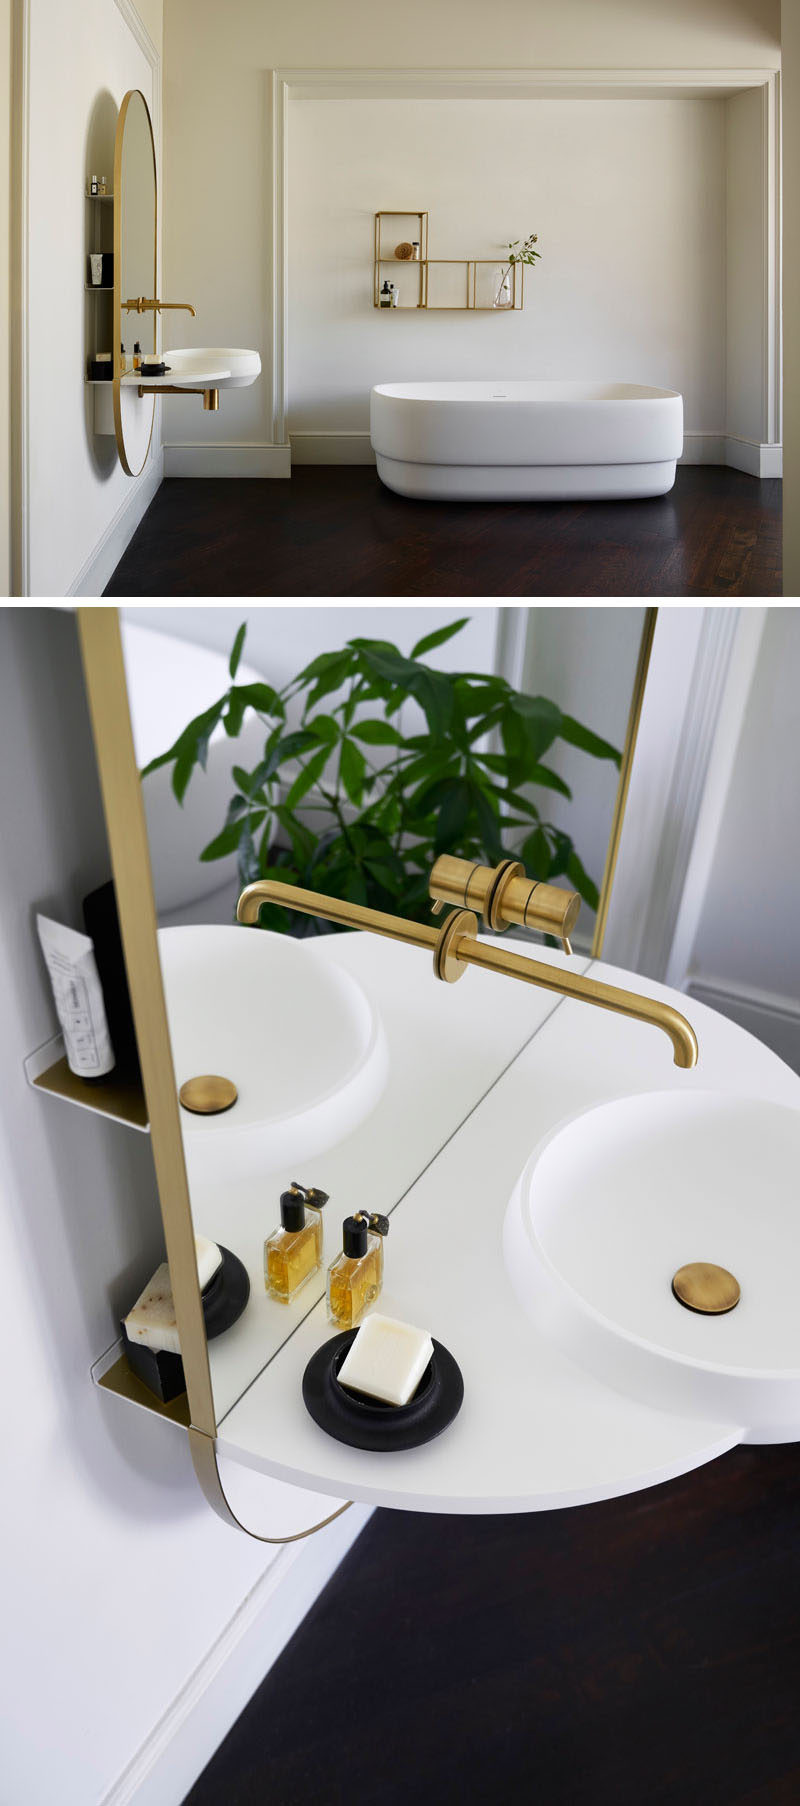 Mut Design studio have created ARCO, a multi-functional piece of bathroom furniture that has an integrated mirror, taps, washbasin, and shelving system hidden behind the glass. #Bathroom #BathroomMirror #ModernBathroom